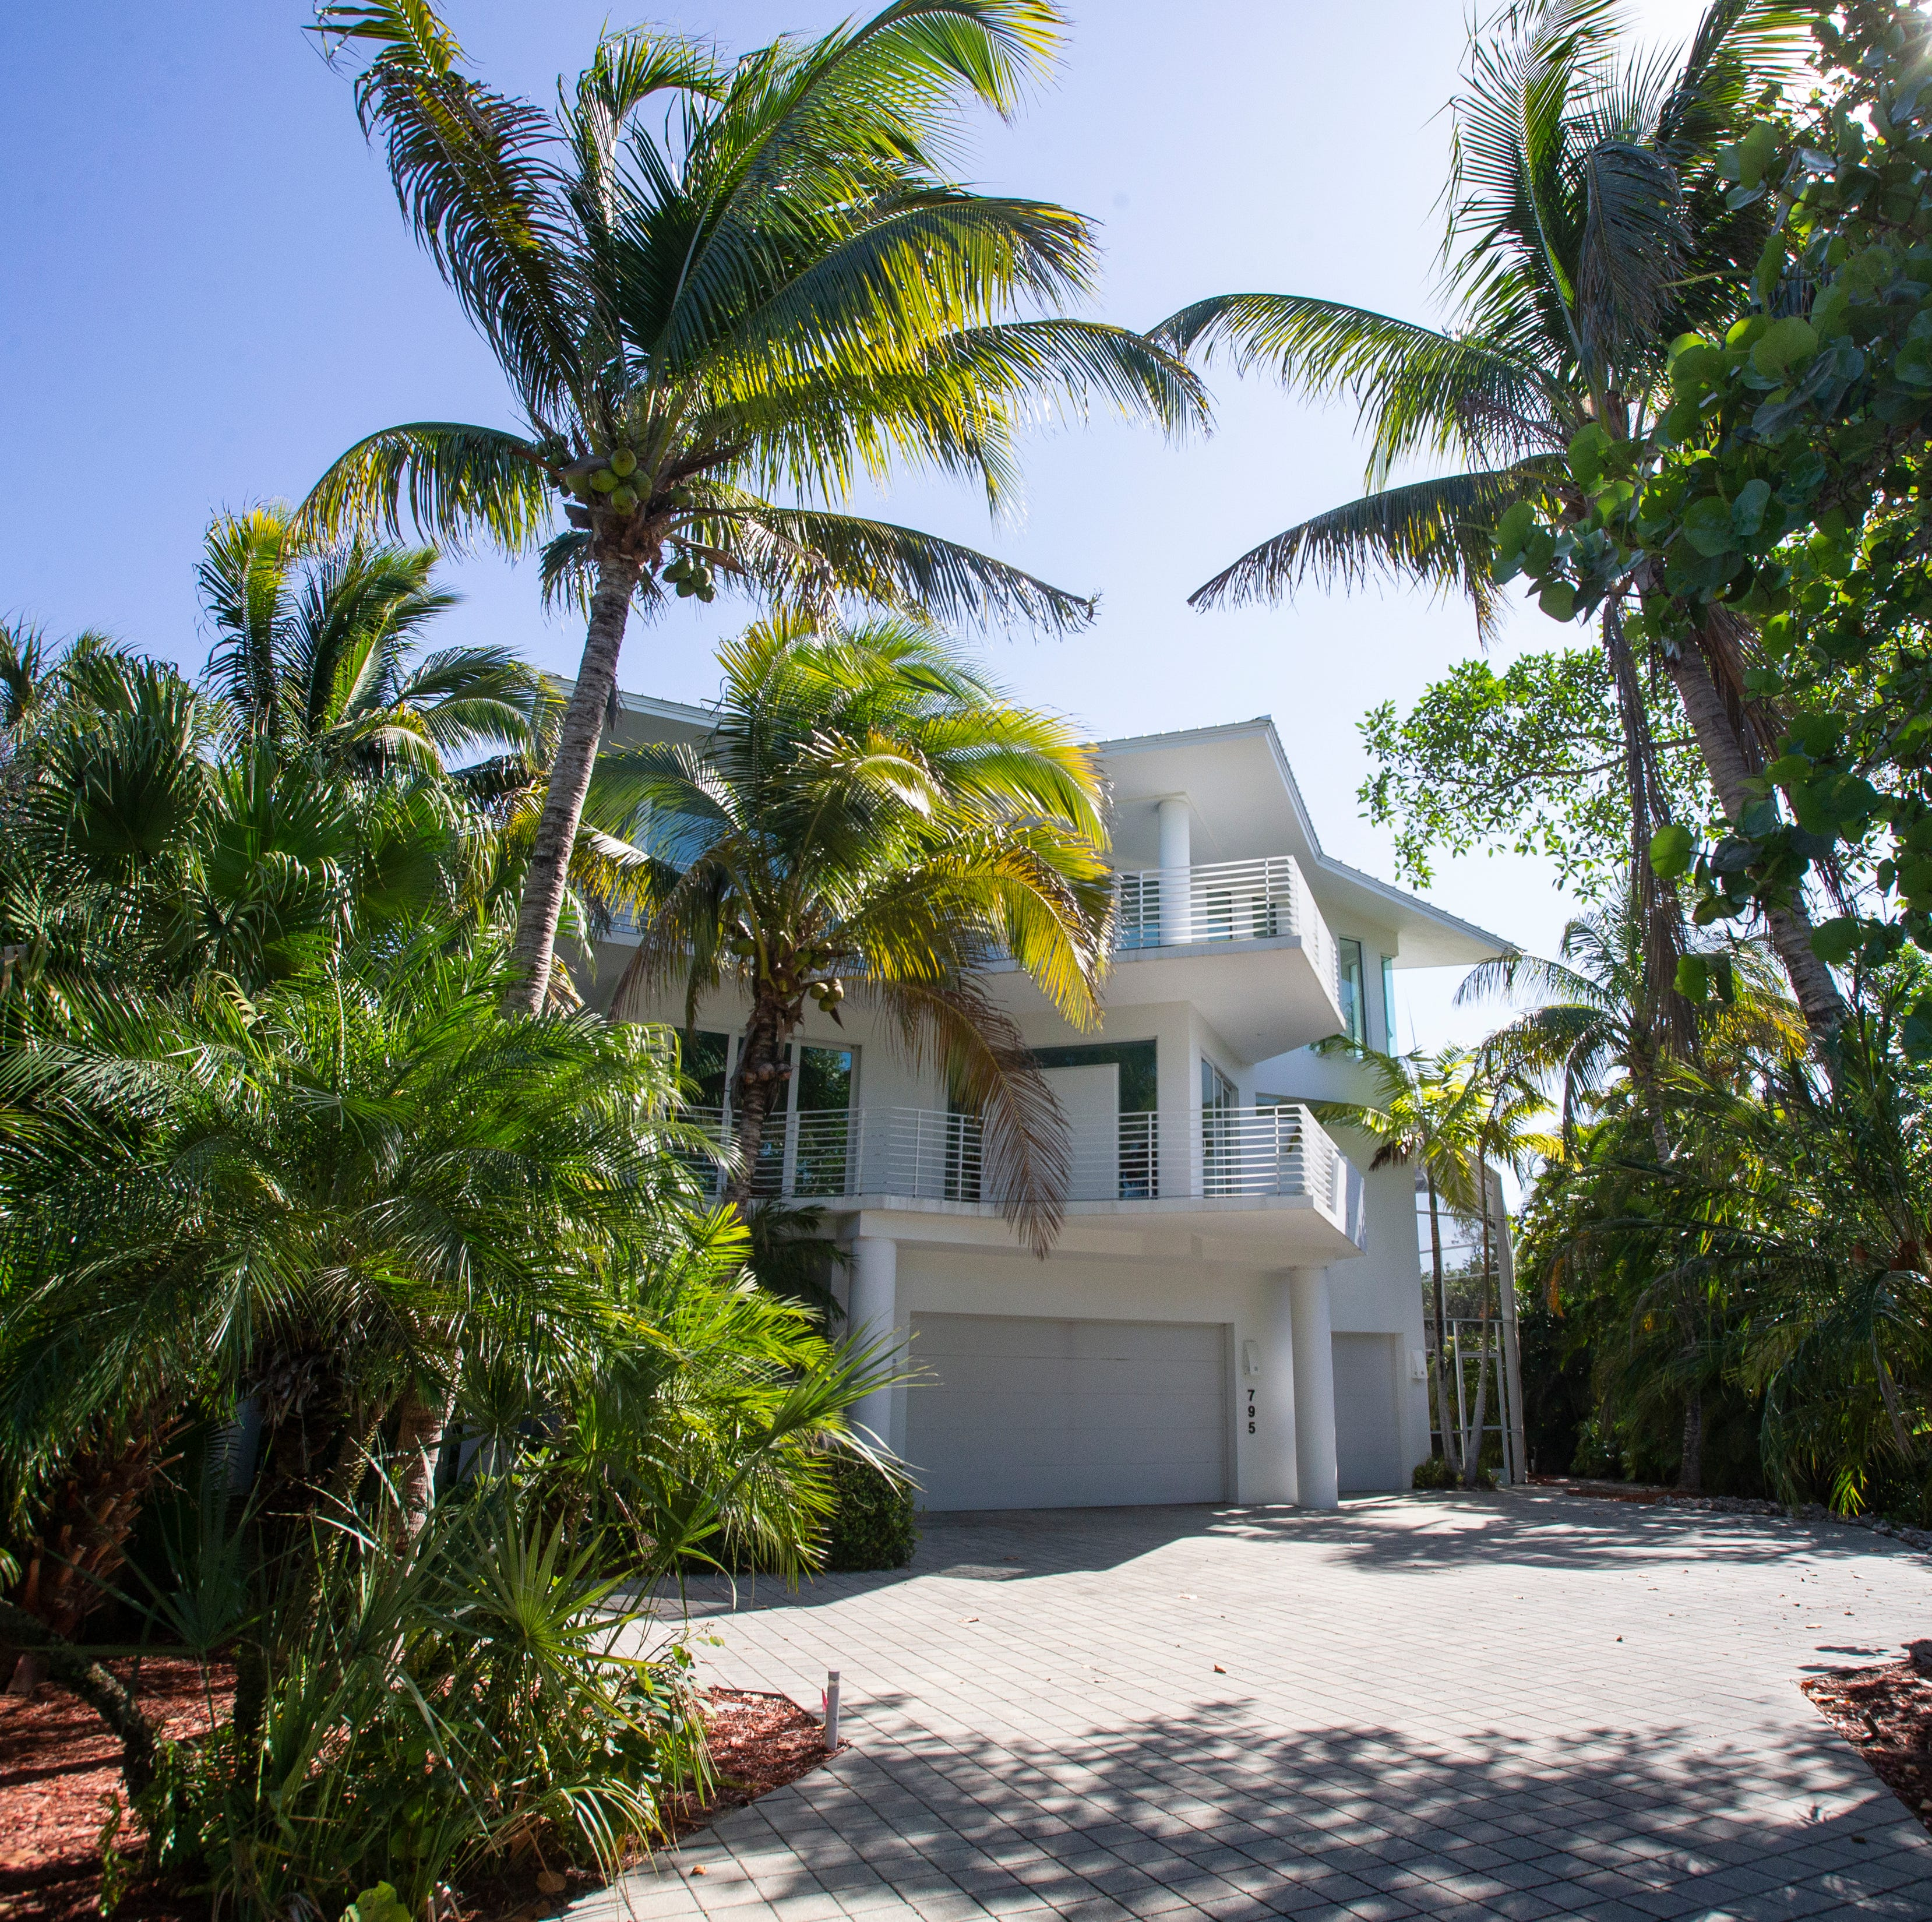 Marco Island home owned by drummer who played with KISS band members going to auction